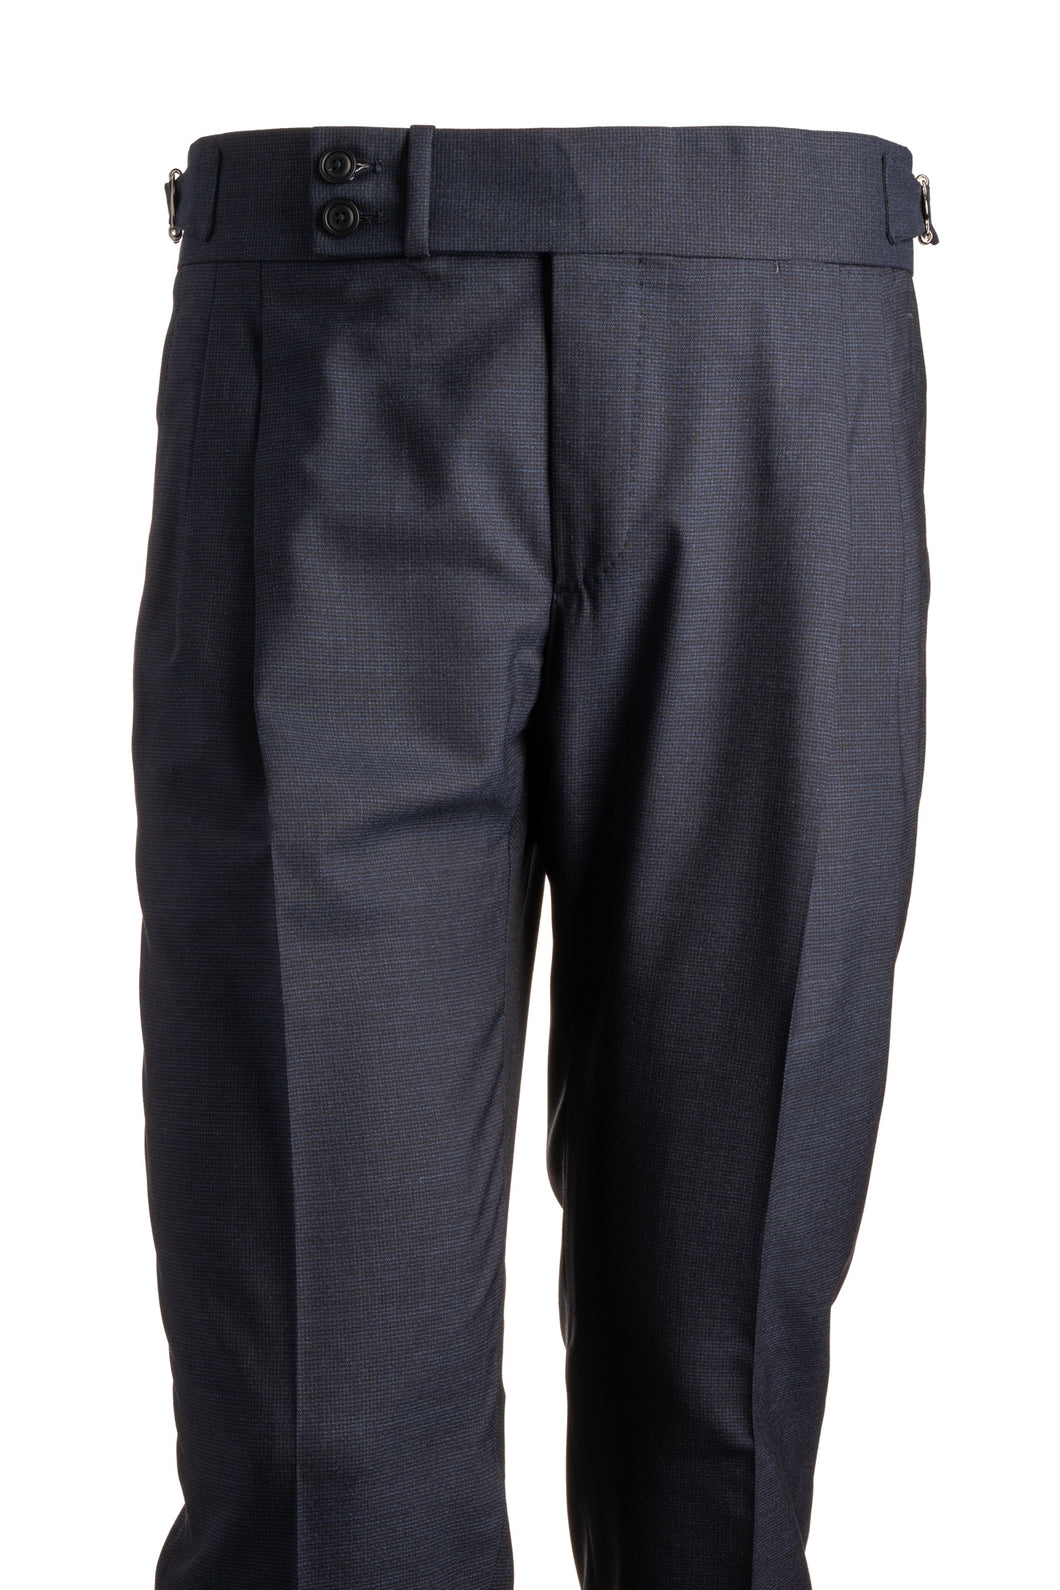 Candia Navy Blue Check Wool Trousers